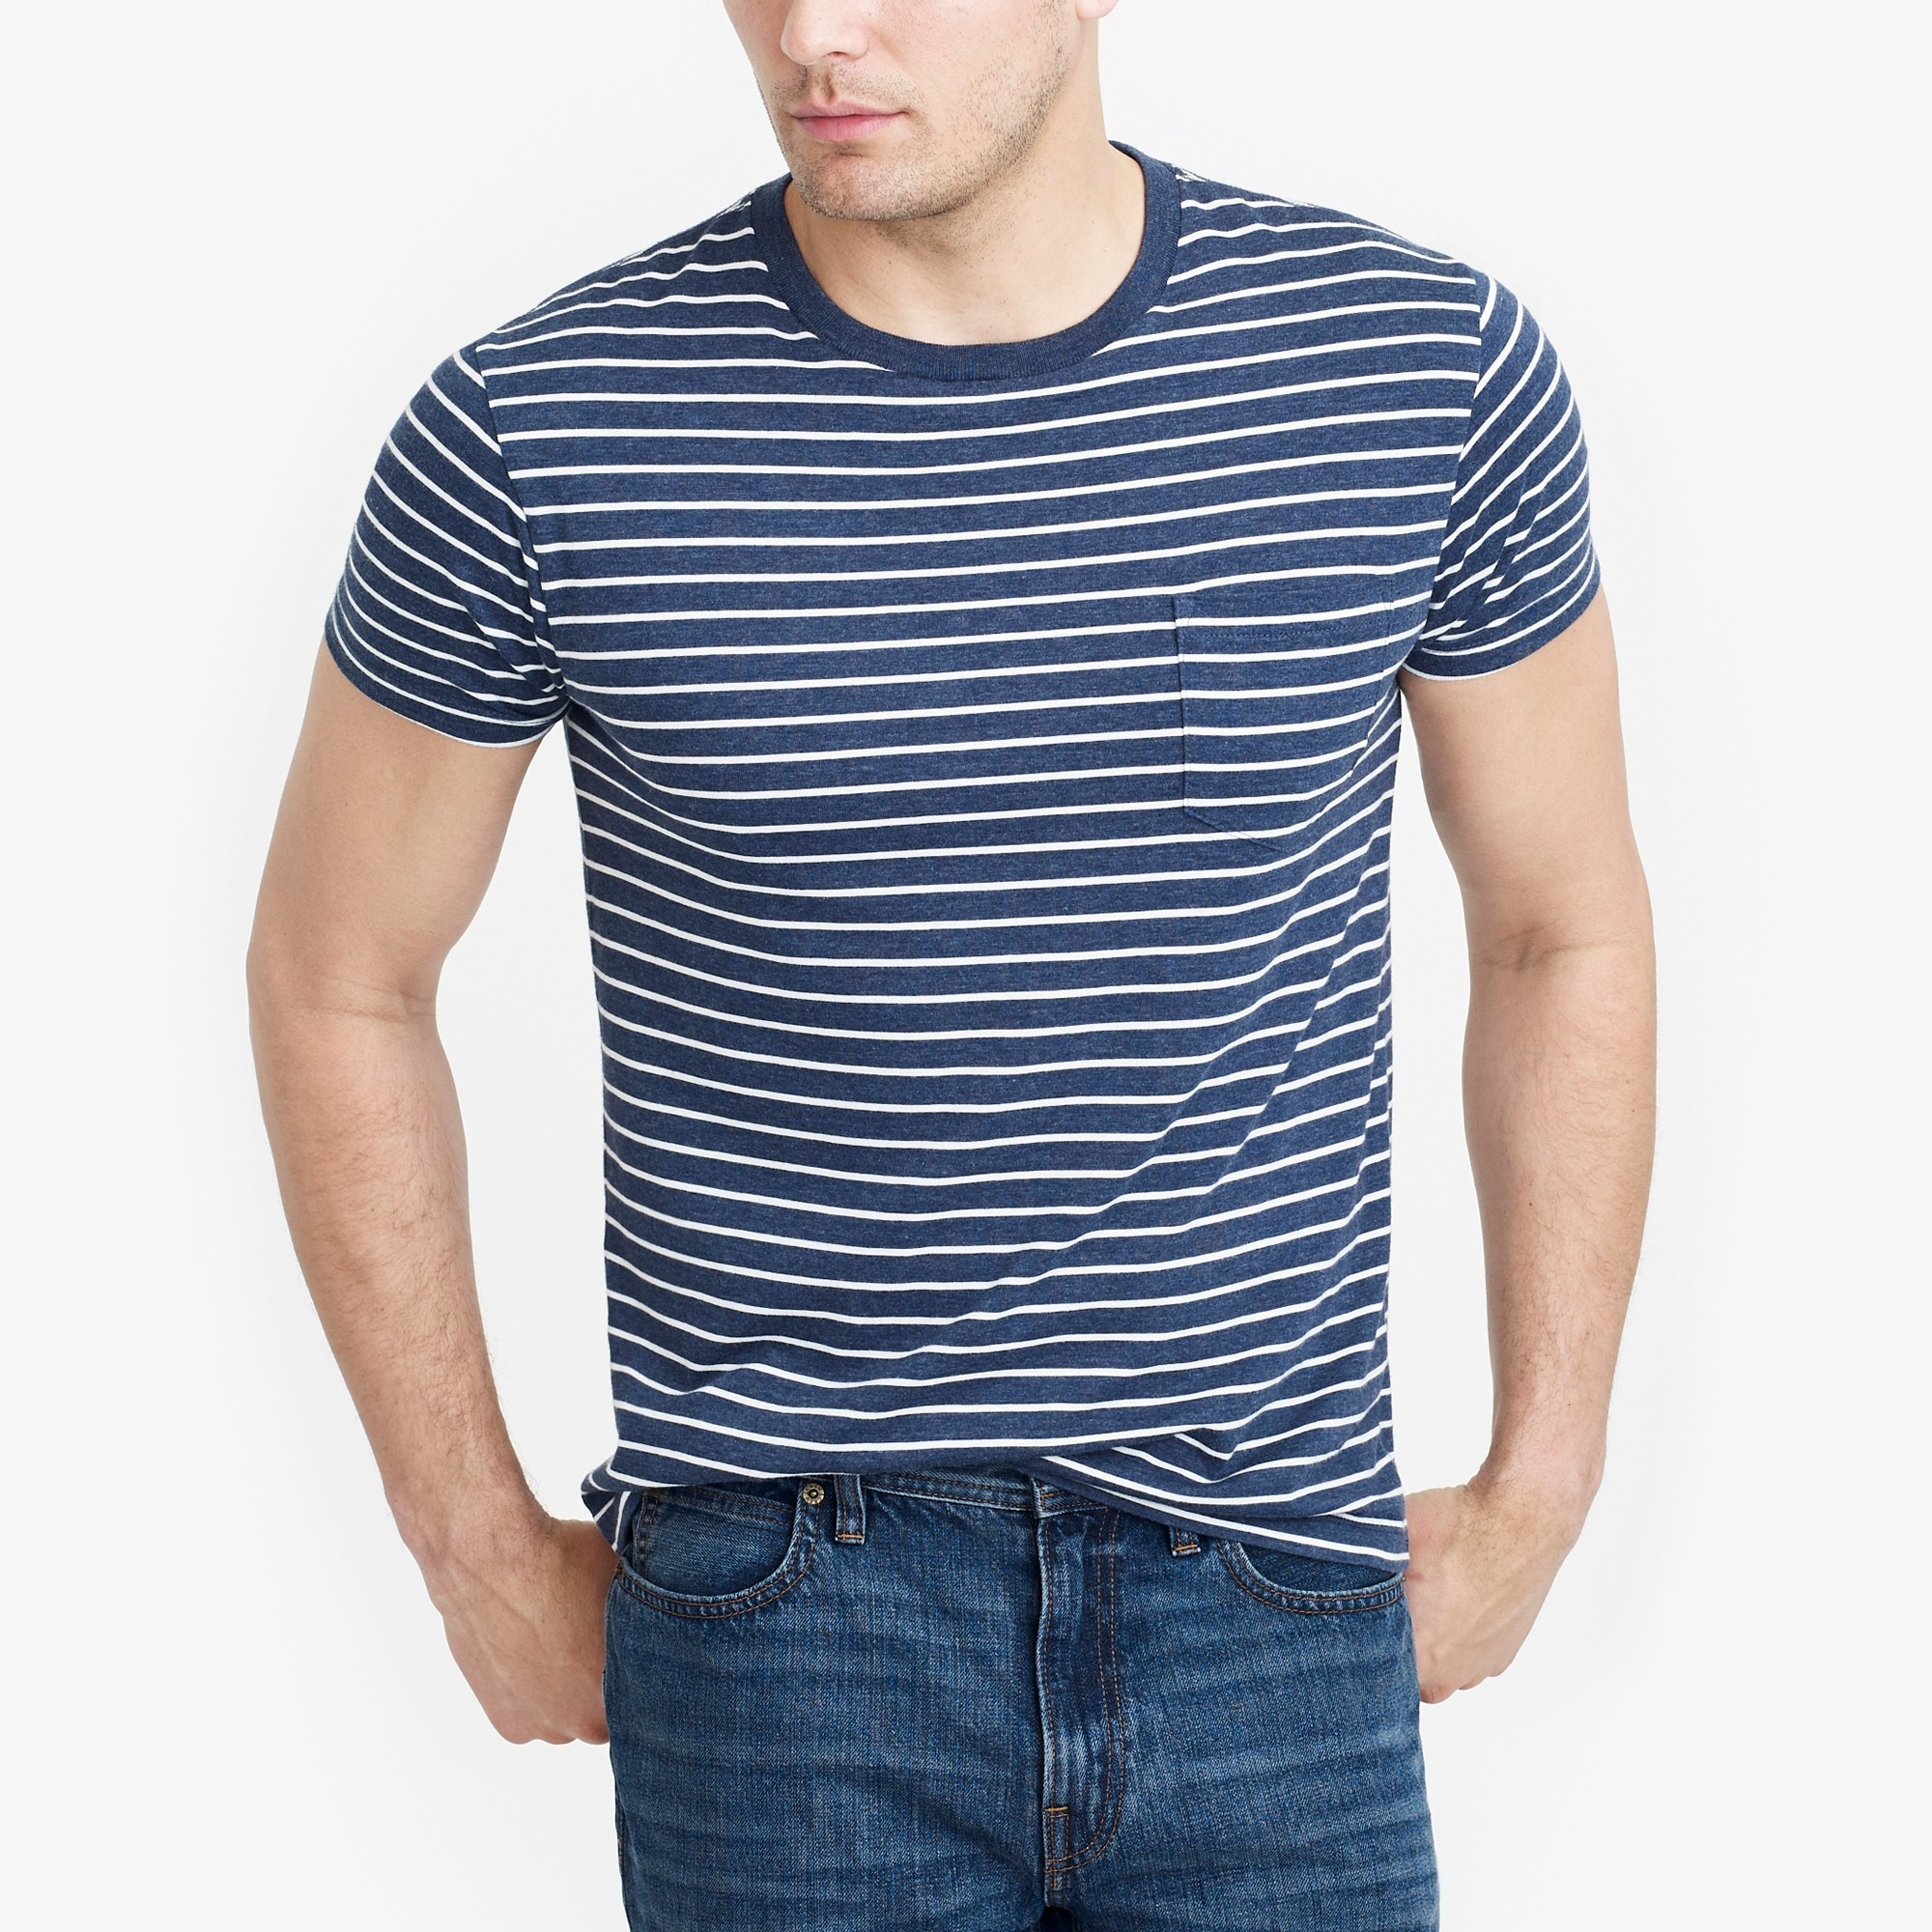 j.crew mercantile tall slim broken-in striped pocket t-shirt : factorymen t-shirts & polos